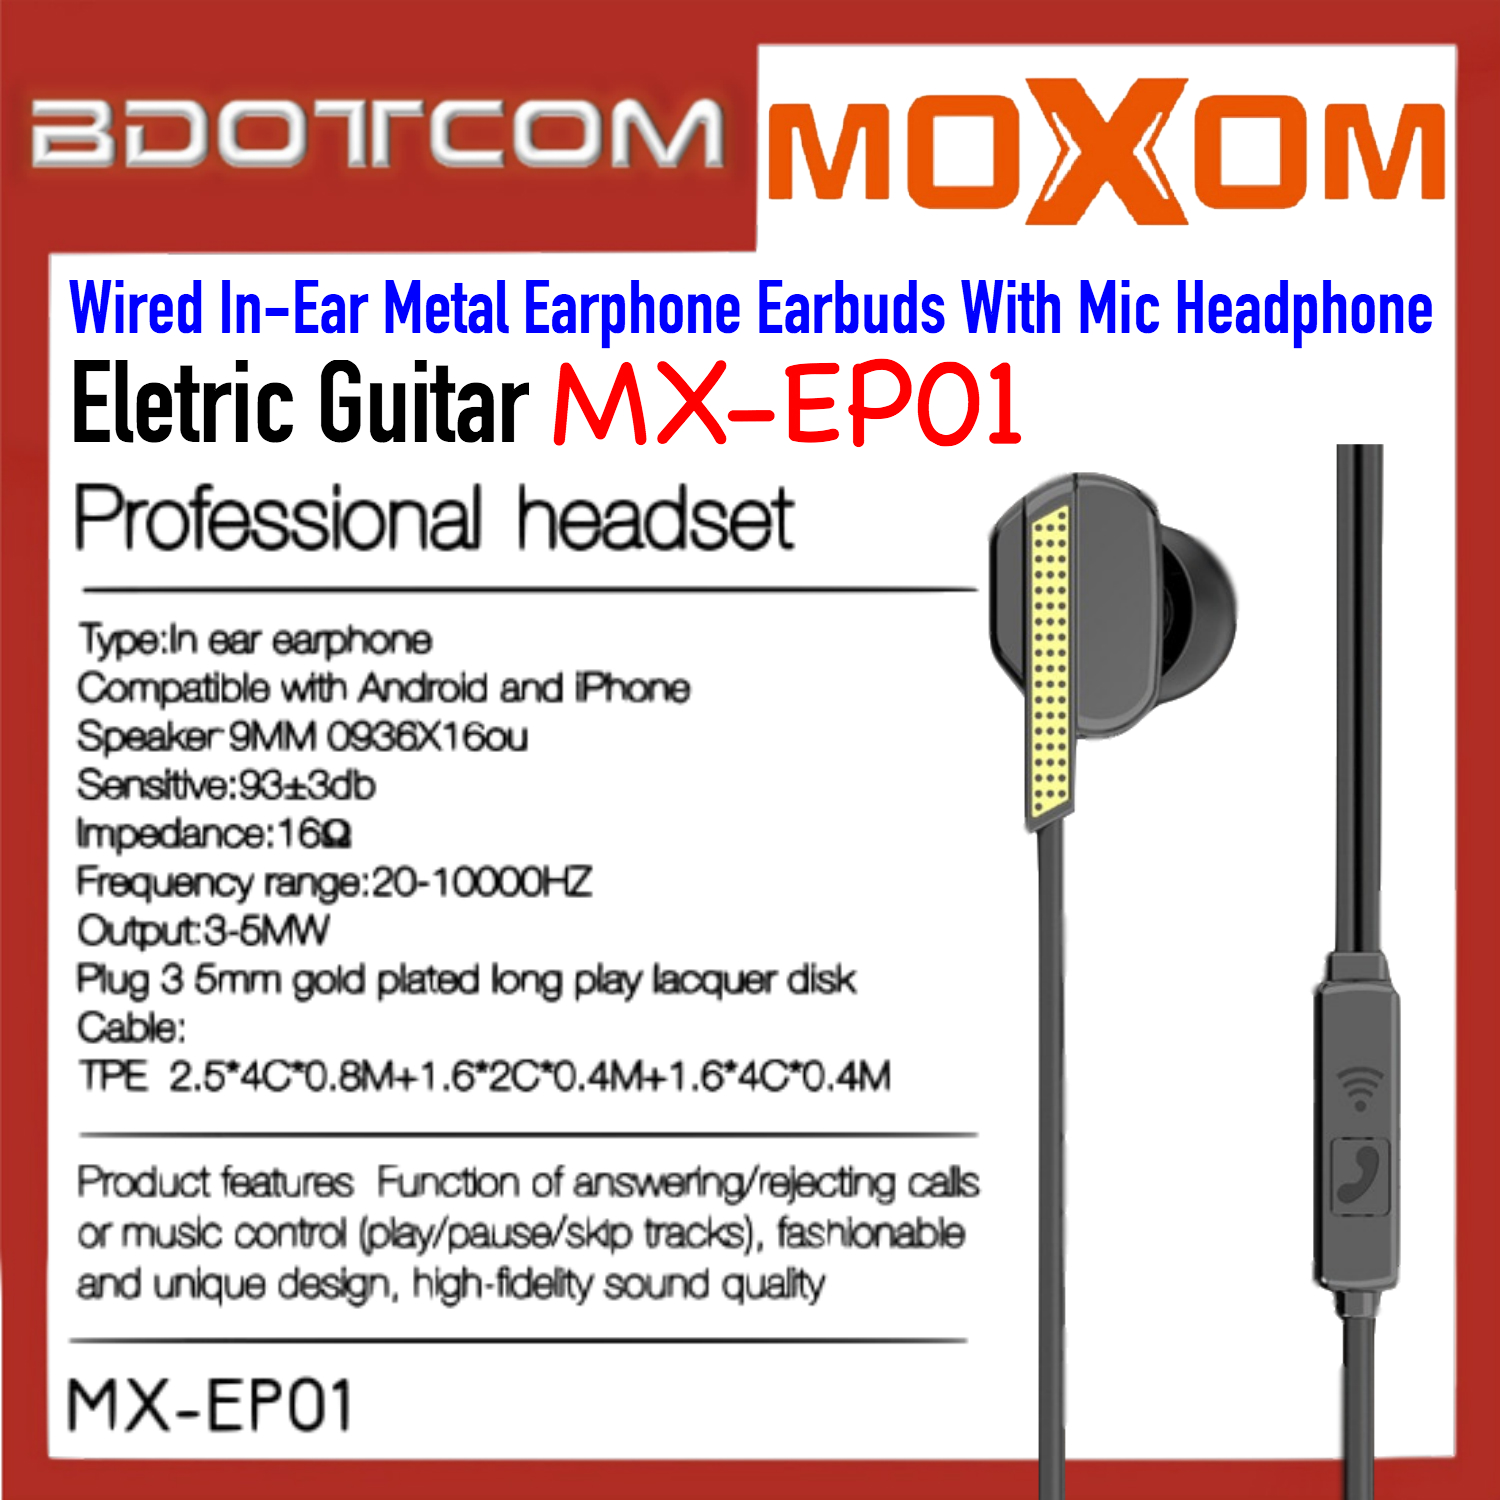 Moxom MX-EP01 Eletric Guitar Wired In-Ear Metal Earphone